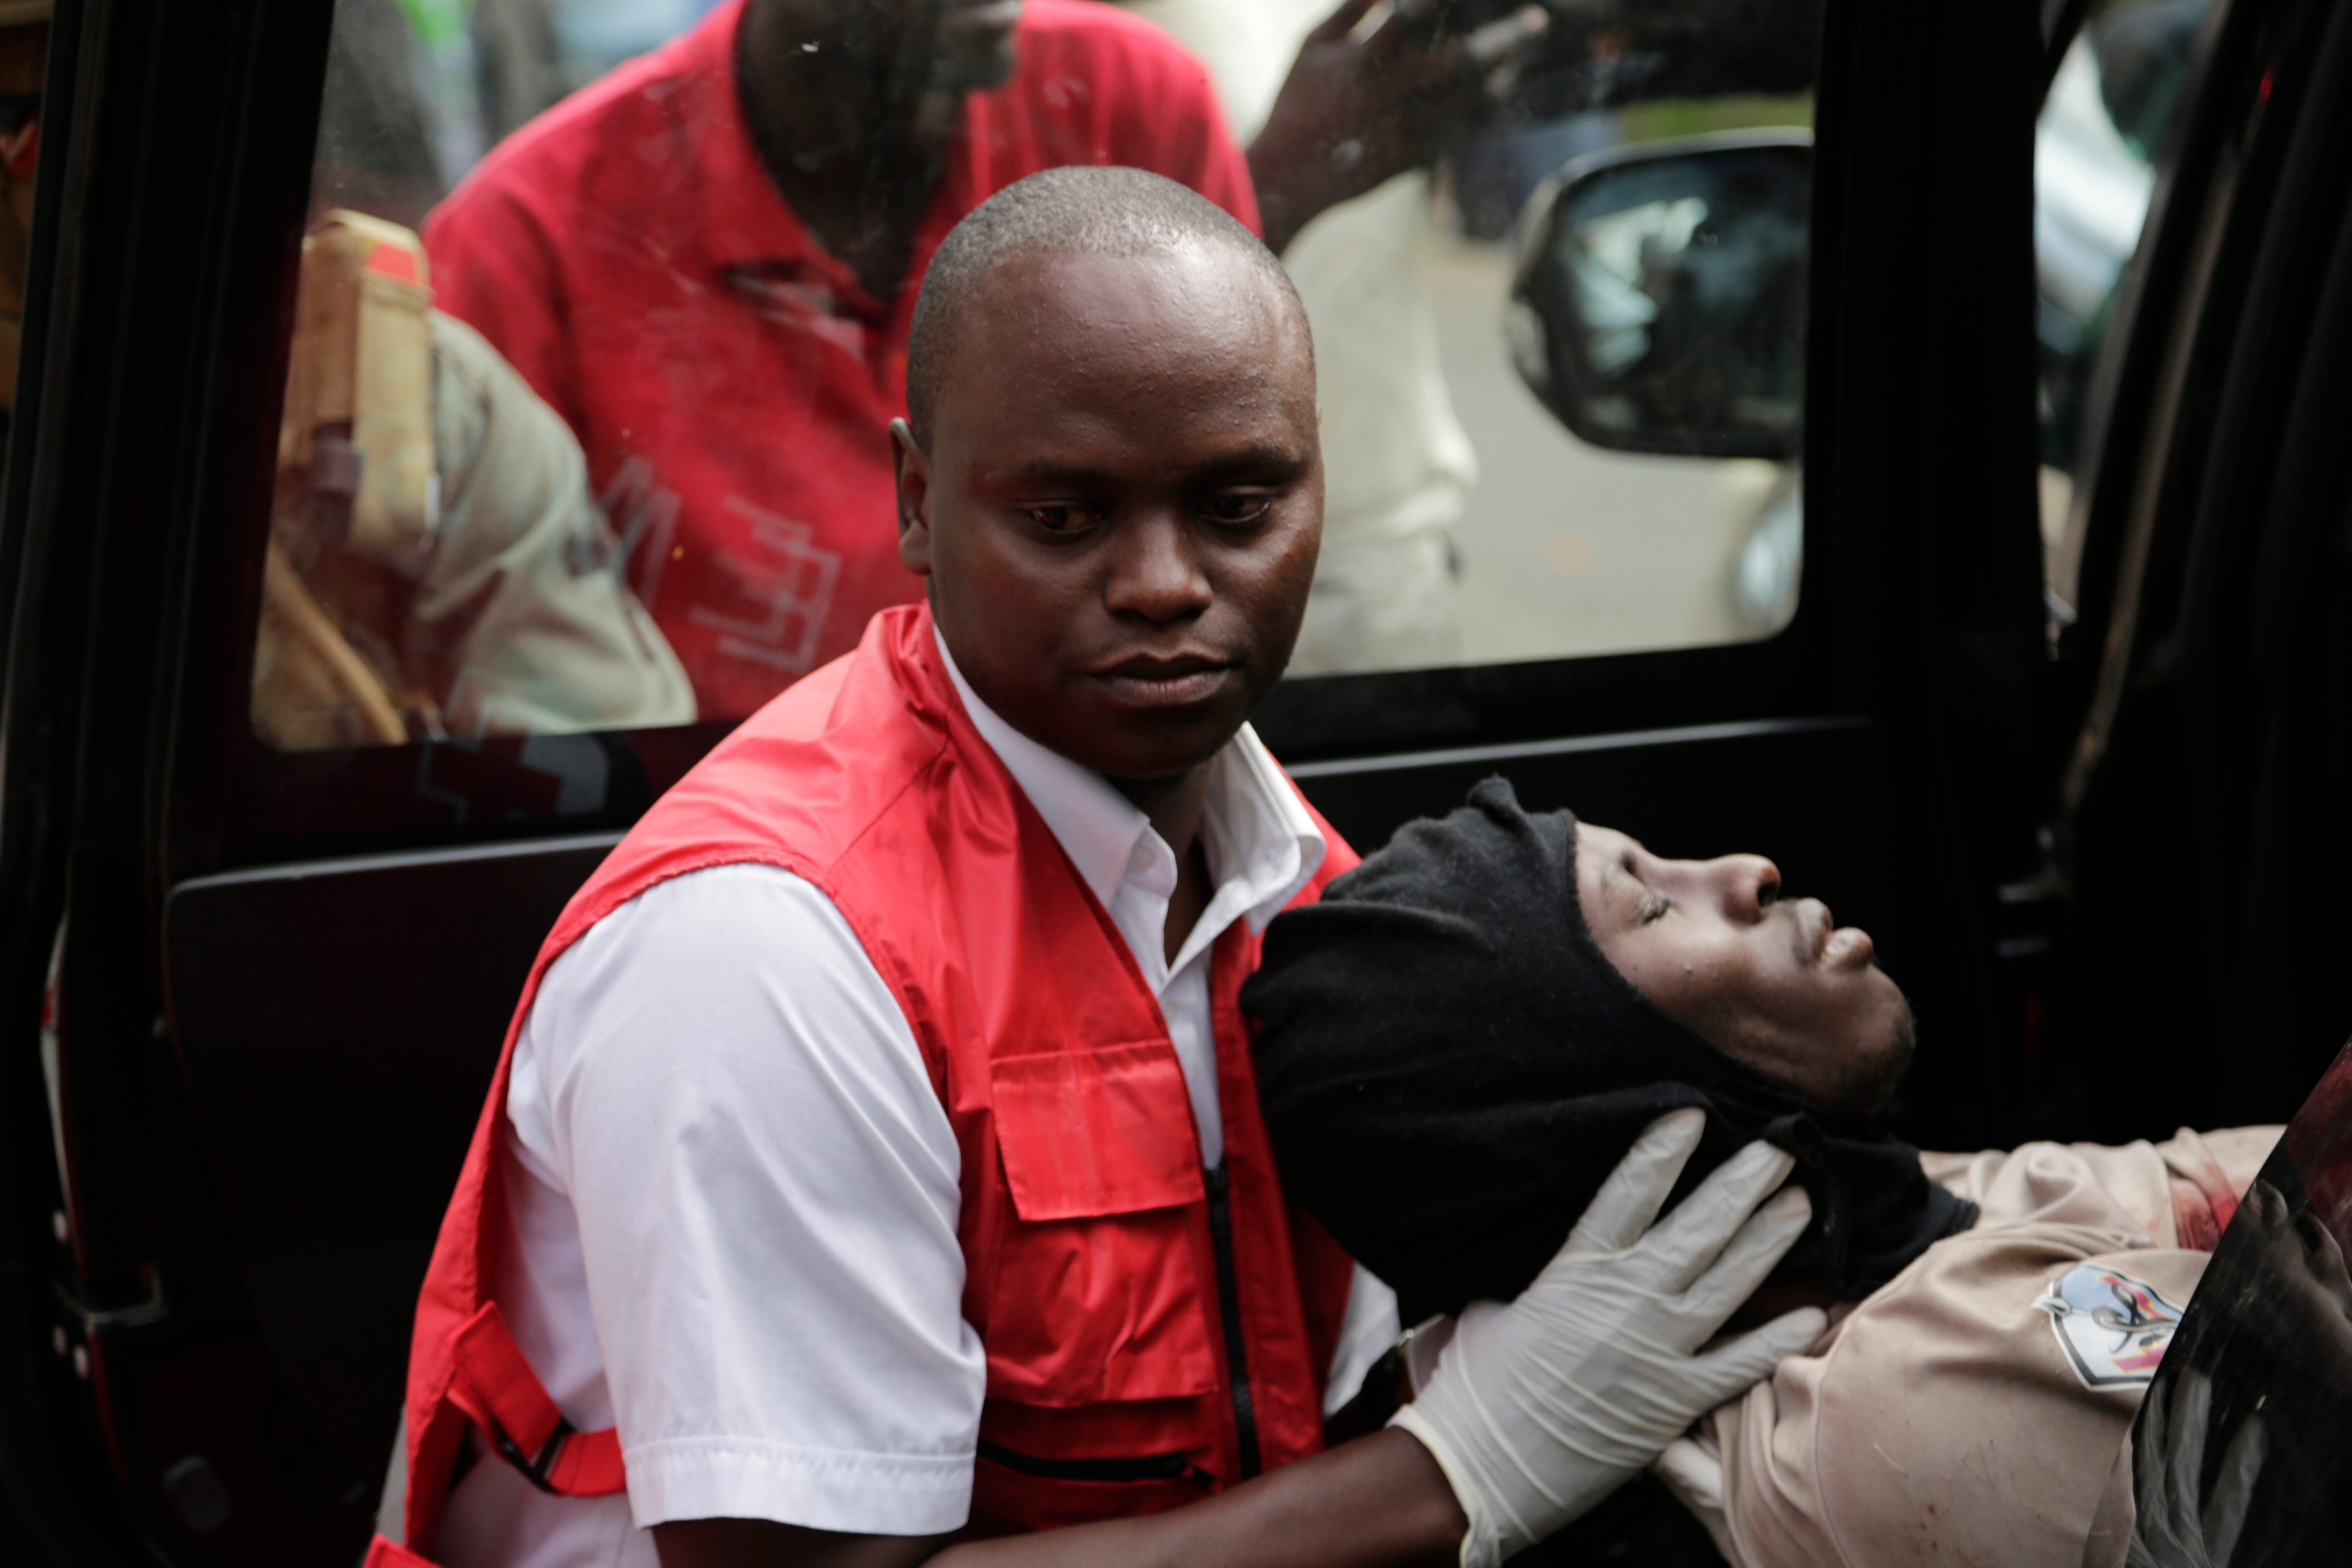 A wounded member of Kenyan special forces is carried from a US embassy diplomatic vehicle into an ambulance by red cross paramedics at the scene Wednesday, Jan. 16, 2019 in Nairobi, Kenya. Extremists stormed a luxury hotel in Kenya's capital on Tuesday, setting off thunderous explosions and gunning down people at cafe tables in an attack claimed by Africa's deadliest Islamic militant group (AP Photo/Khalil Senosi) A wounded officer with the U.S. embassy's Special Program for Embassy Augmentation Response (SPEAR) team is loaded into an ambulance after being hit by grenade fragments while responding to the attack at the DusitD2 Hotel, January 16, 2019, in Nairobi. SPEAR team members are trained and equipped by the Antiterrorism Assistance program to respond to crises involving the U.S. embassy and are also available to assist in other emergencies. (AP/WideWorld Photos)